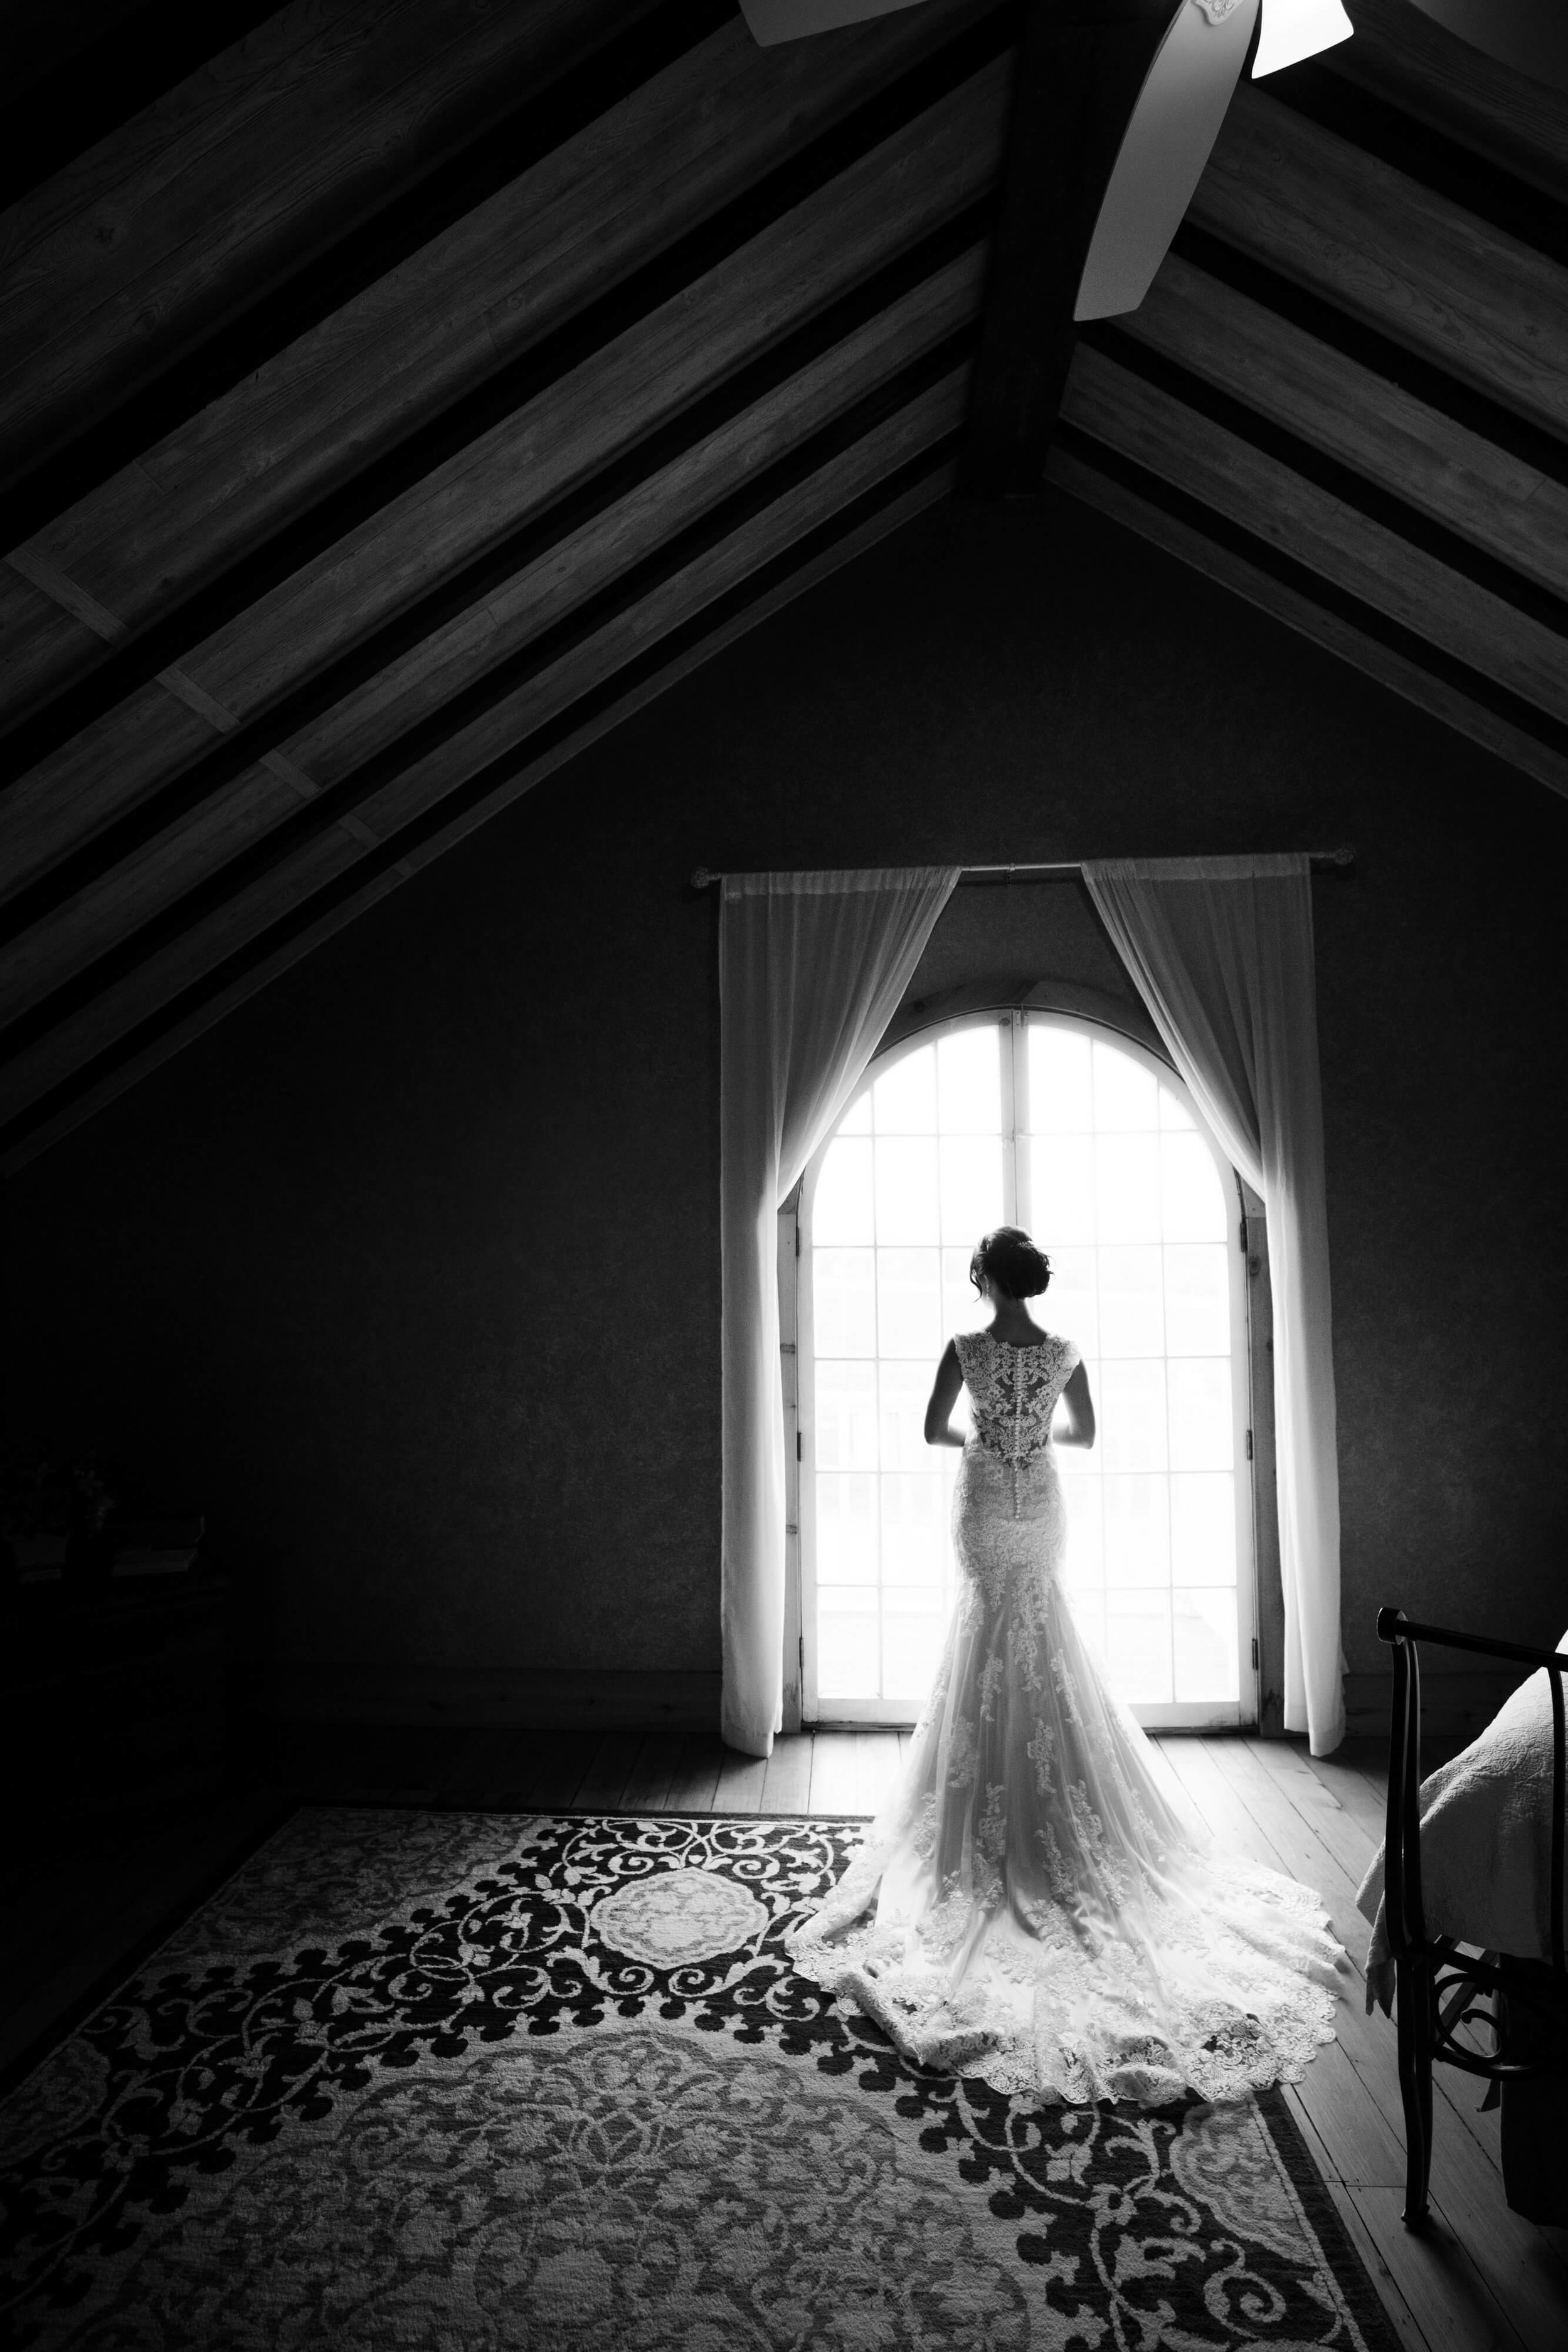 bride alone in the attic in front of the window - full train photo | Sixpence Events and Planning | Studio KH wedding